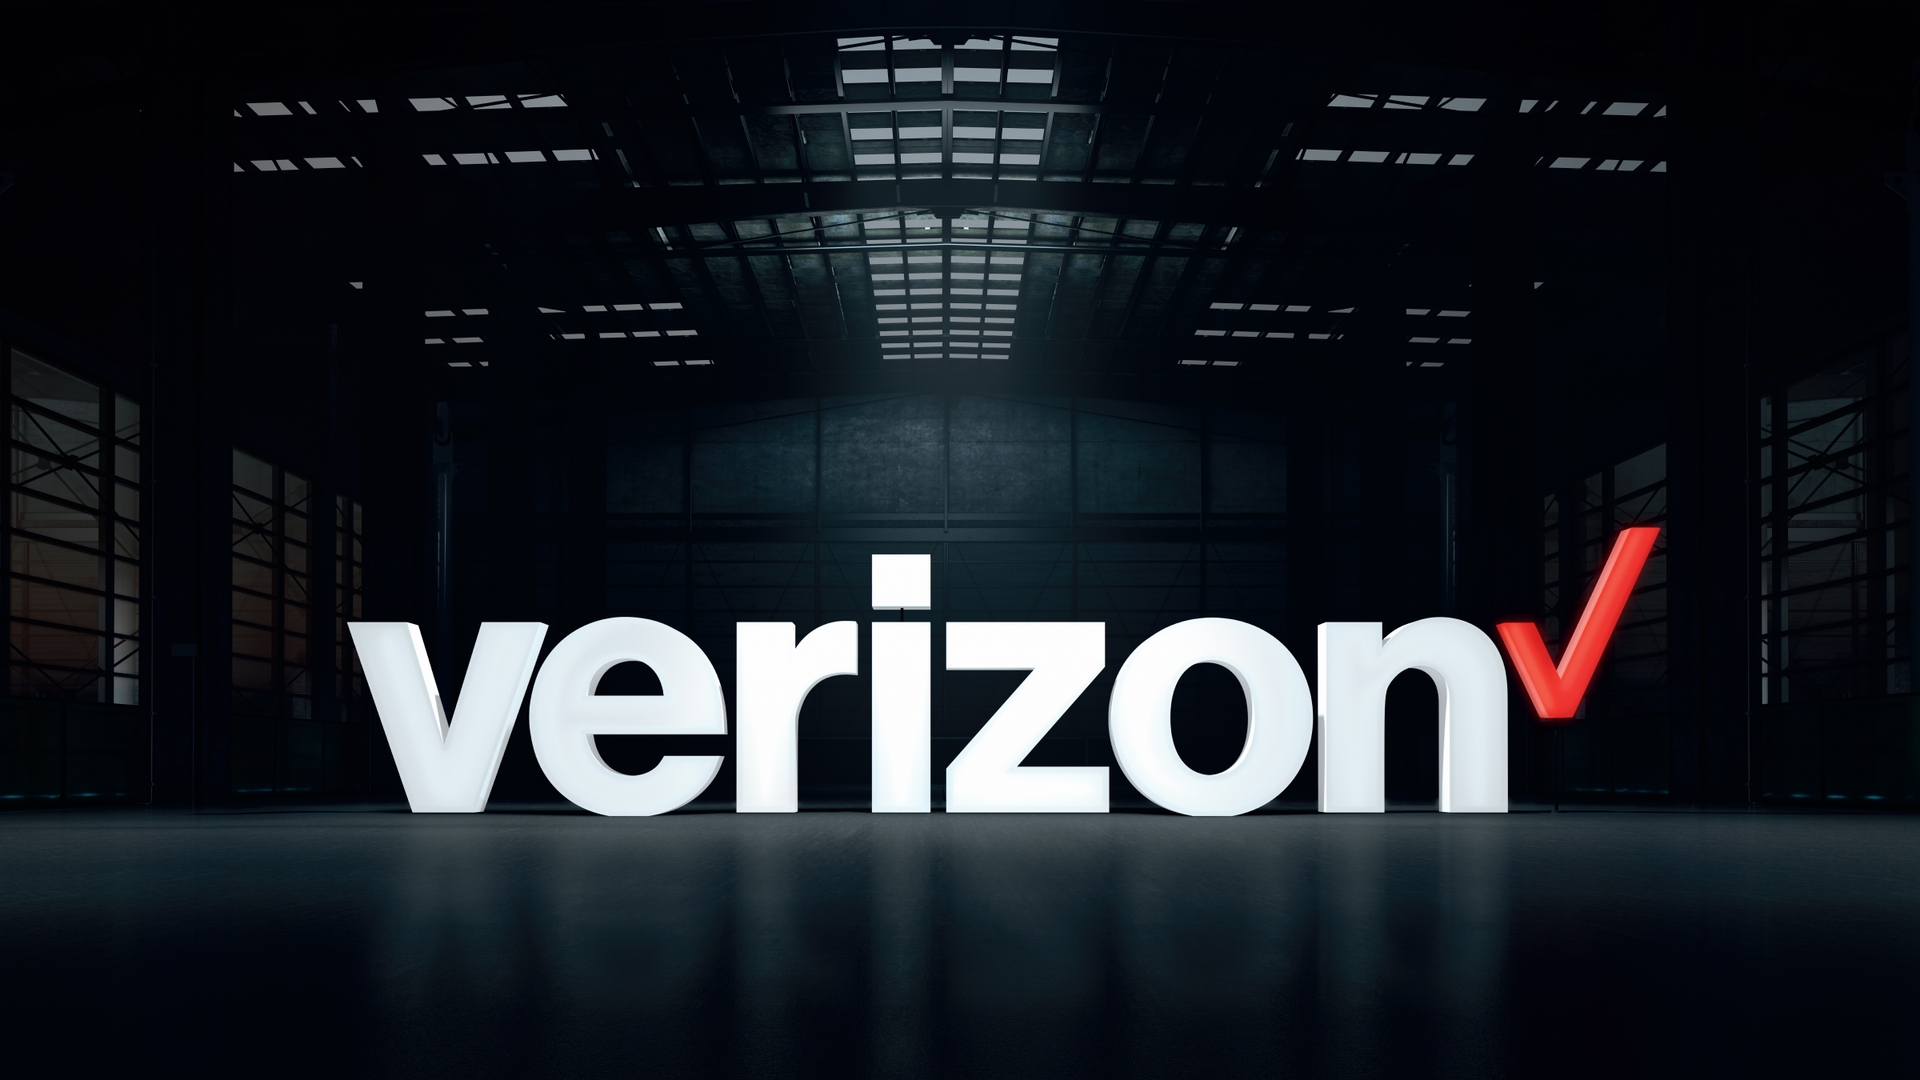 Verizon logo warehouse